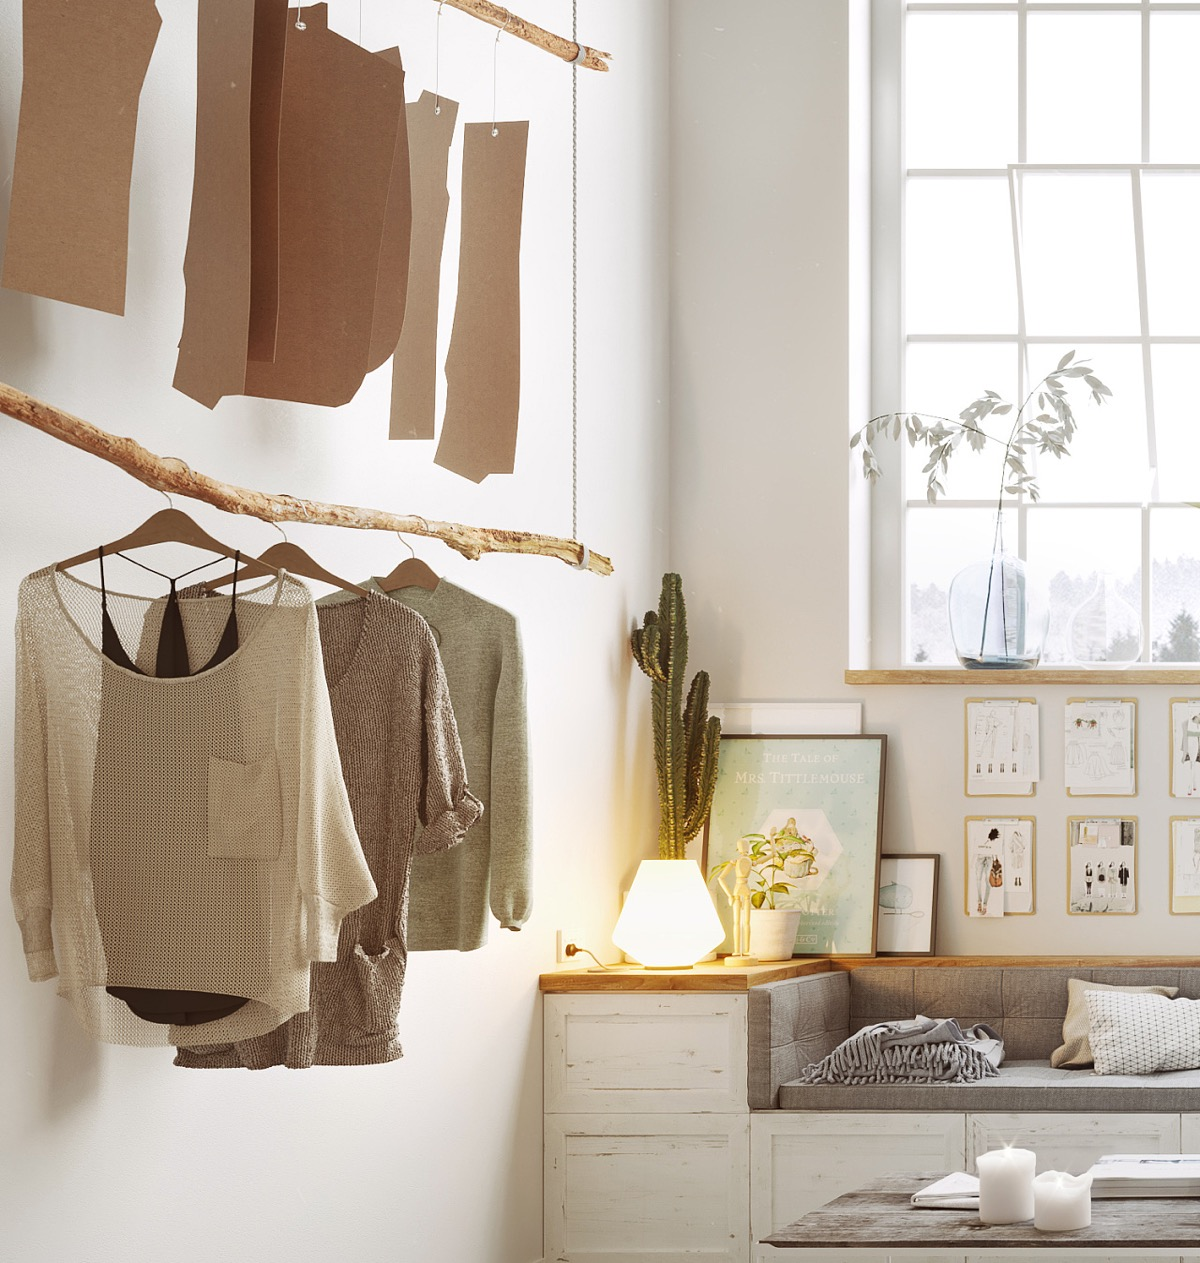 Rustic Clothes Rail - Scandinavia meets japan in these minimalist work spaces